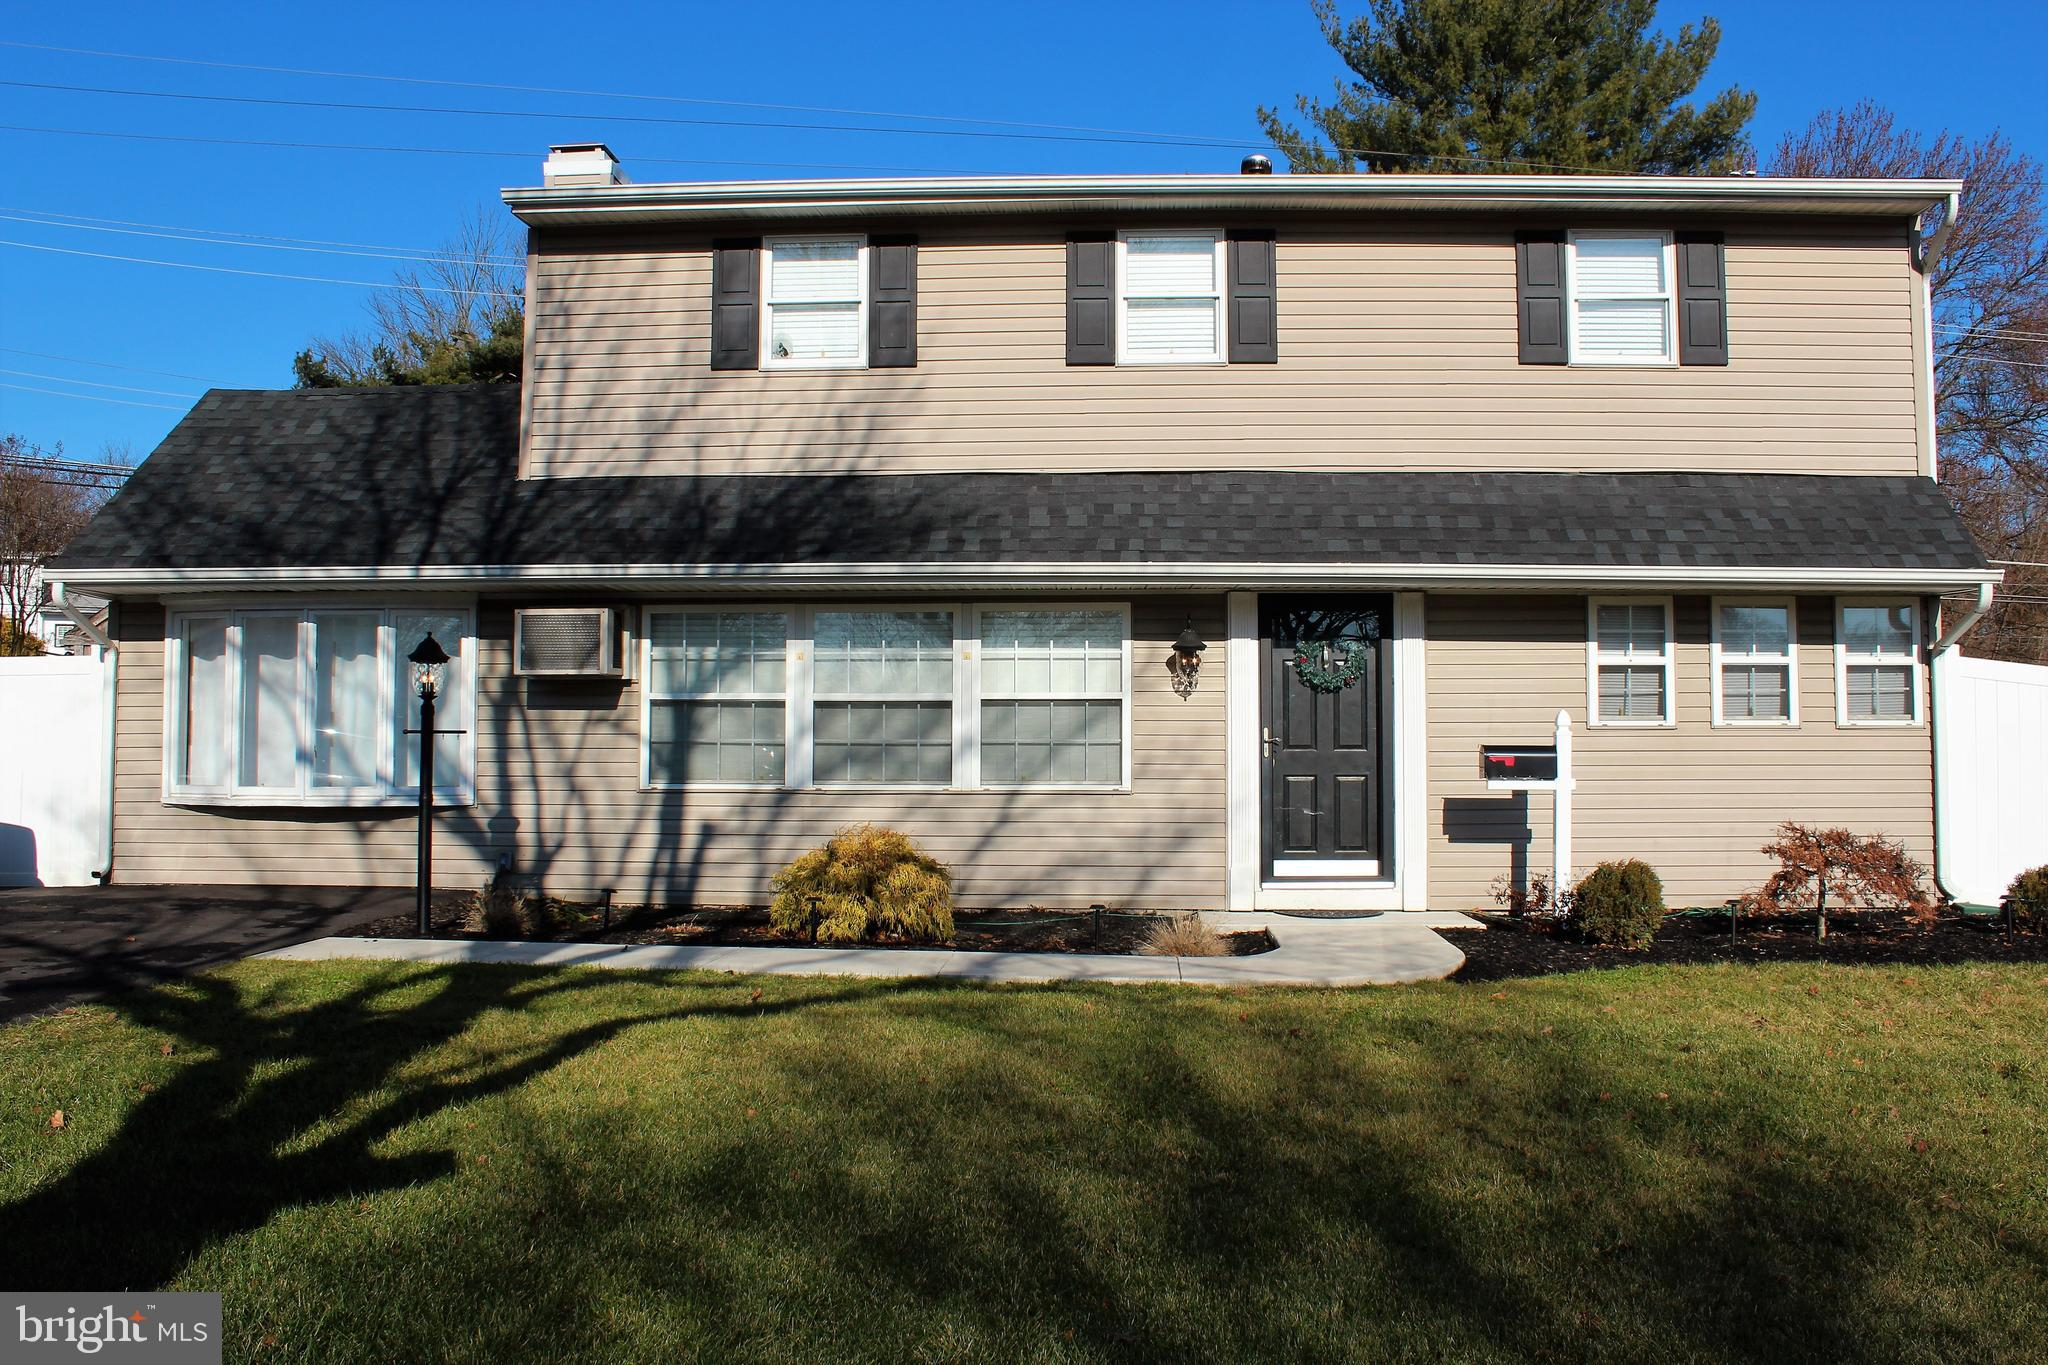 93 UPLAND ROAD, LEVITTOWN, PA 19056